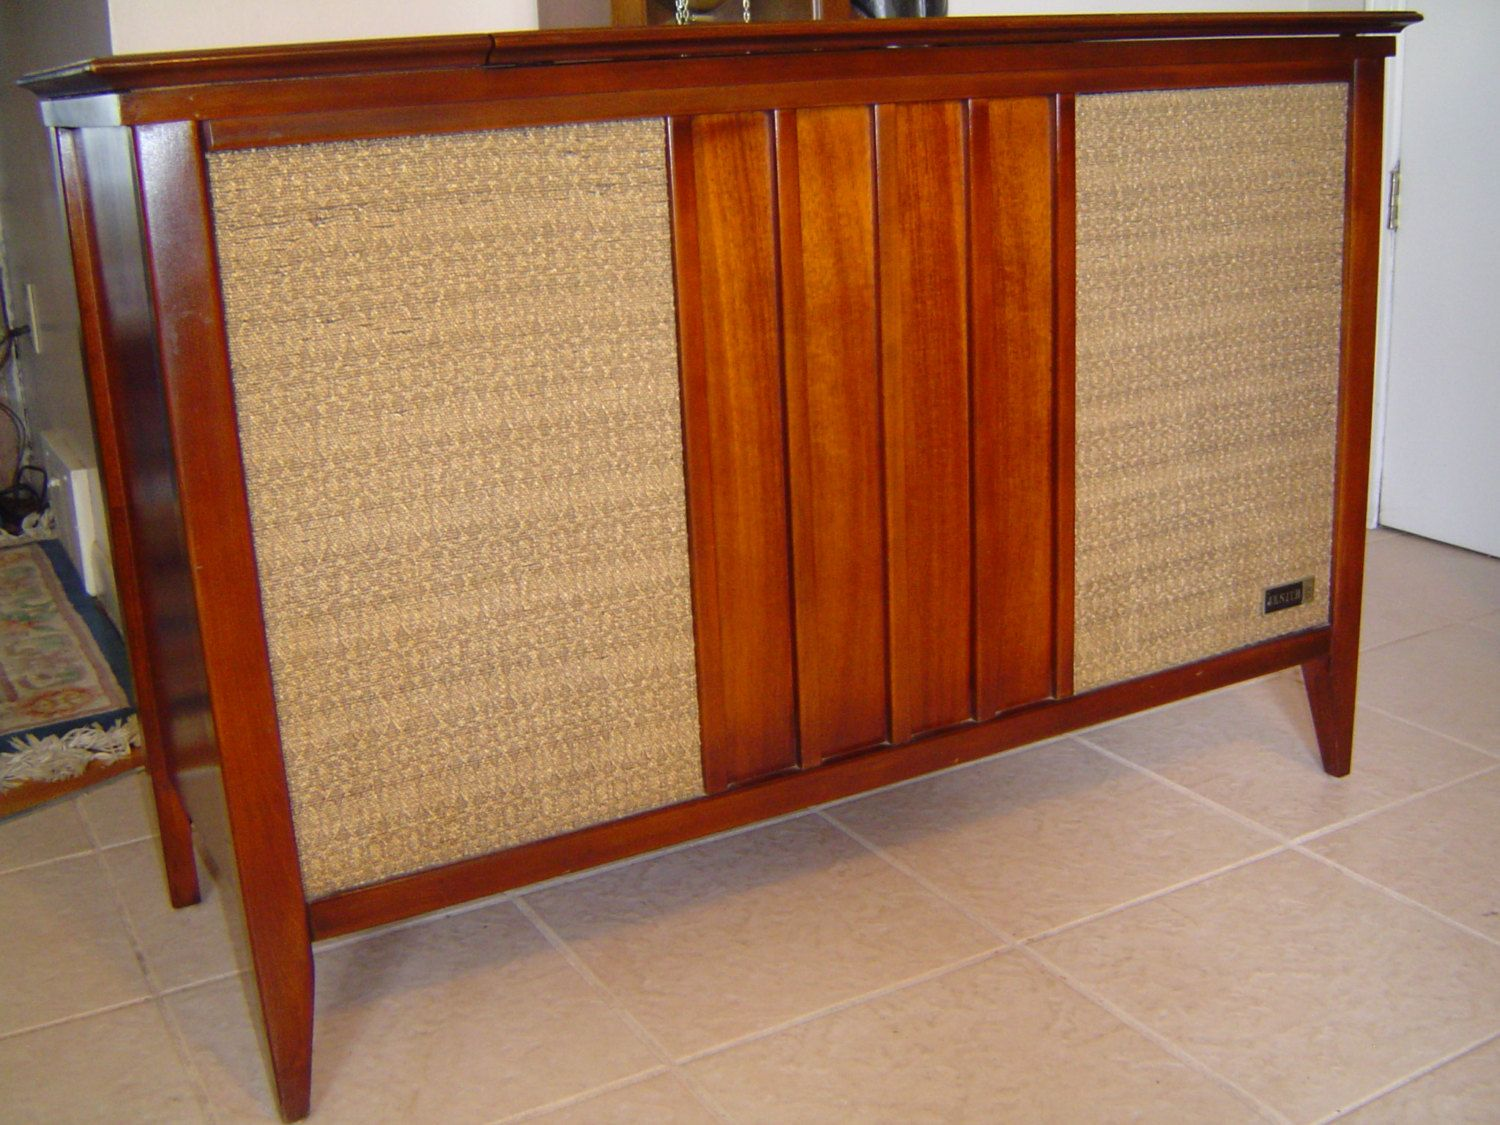 Vintage Zenith Stereo Radio / Record Player Console, Mid Century Modern  Furniture, LOCAL Pick Up ONLY Warren, Michigan (Detroit Area) By PennyBunny  On Etsy